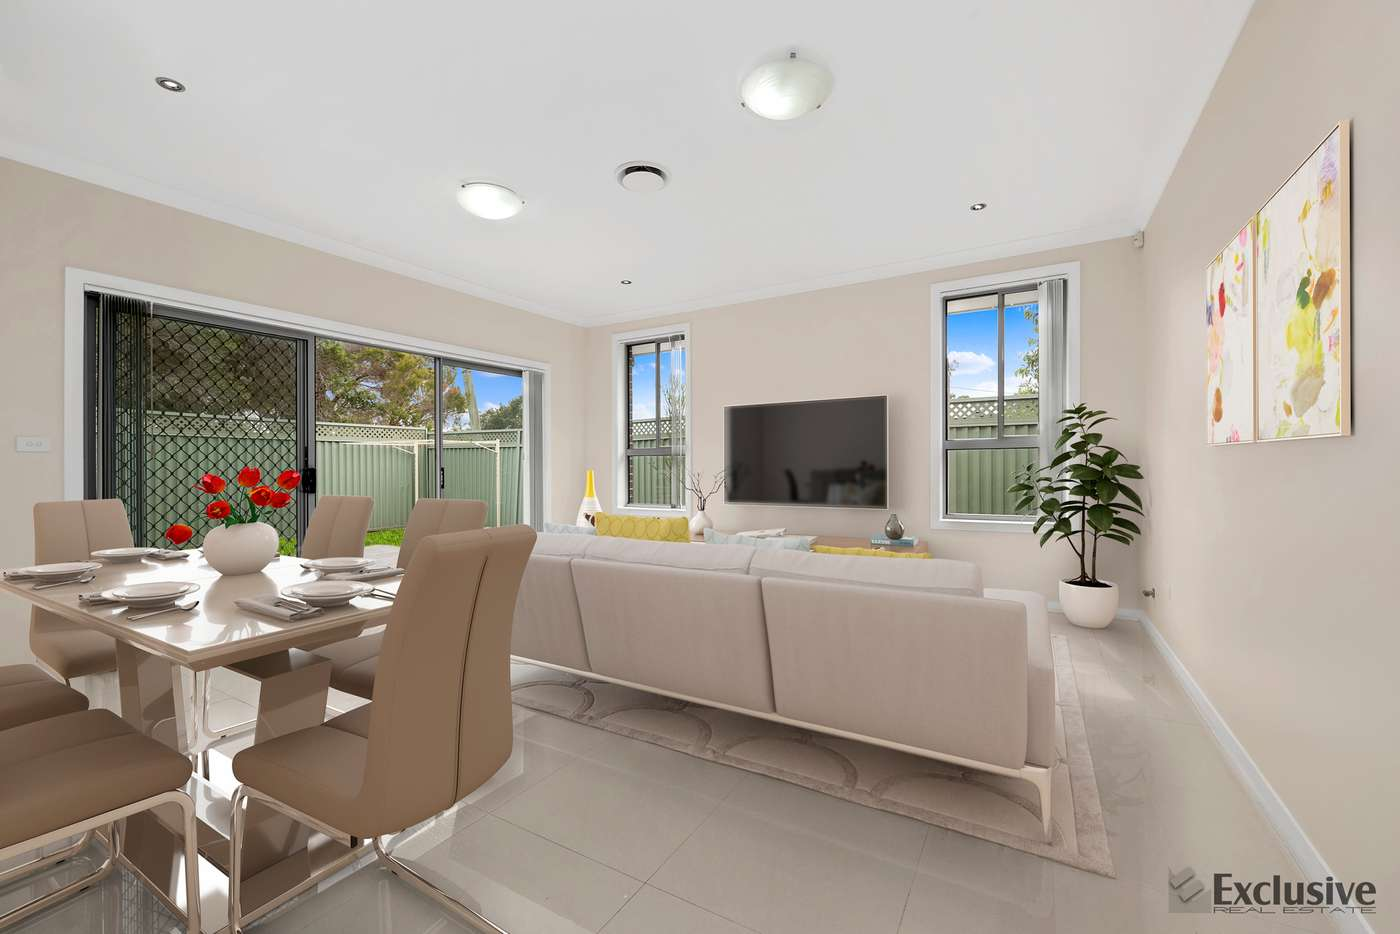 Main view of Homely villa listing, 16/46-48 O'Brien Street, Mount Druitt NSW 2770